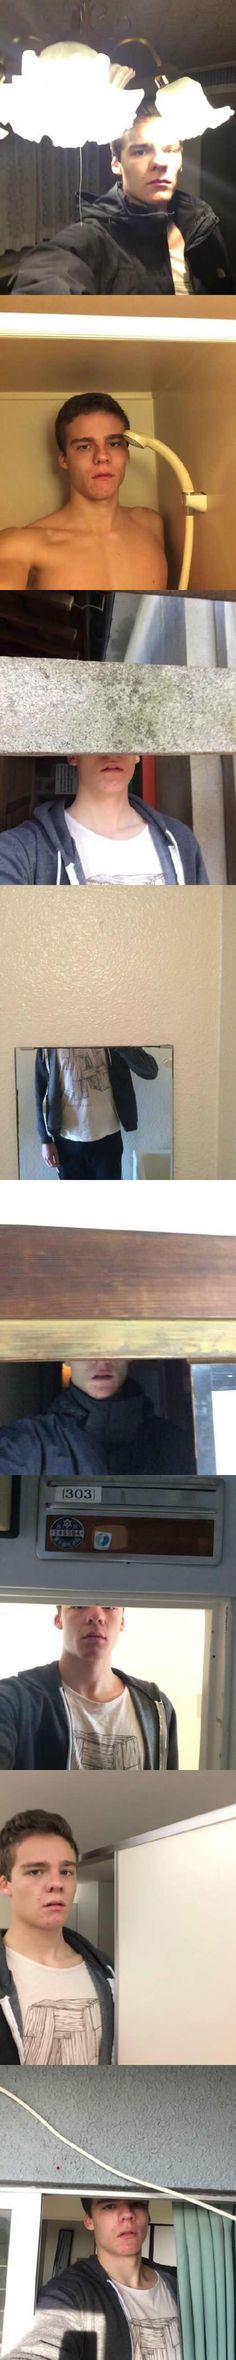 Tall people's problem - especially when you're a 192cm tall dude visiting Japan